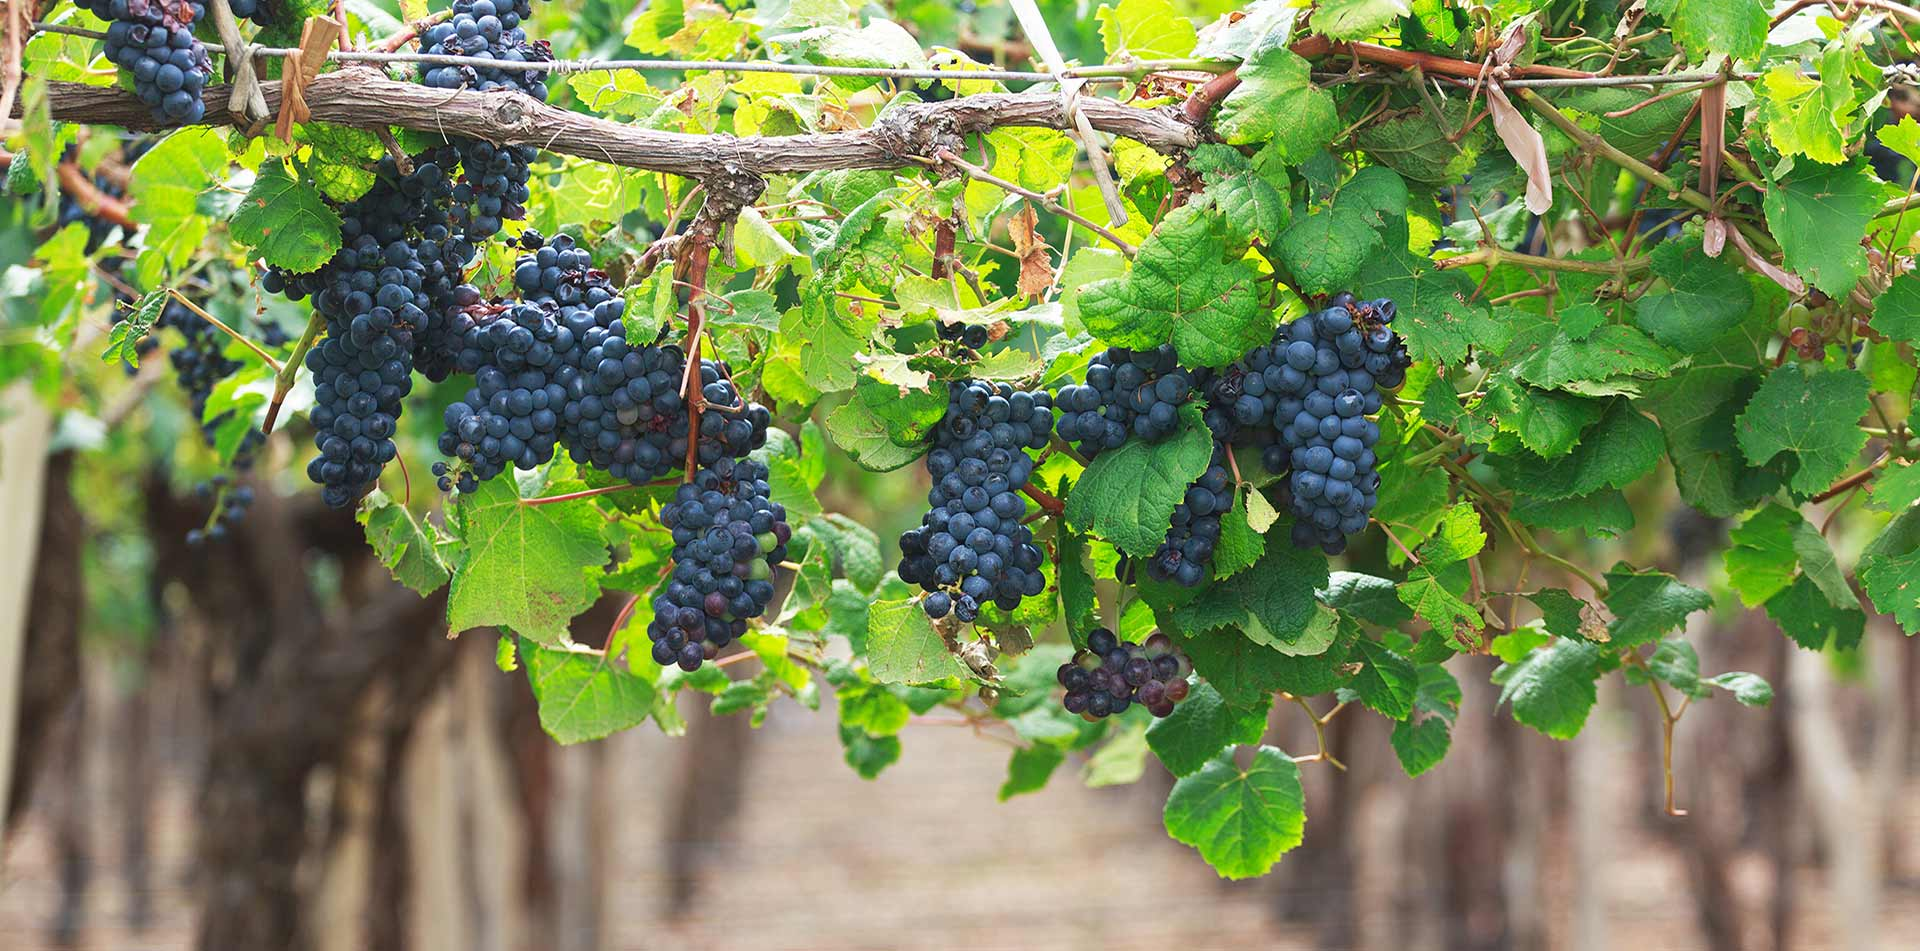 Europe Croatia Vineyard ripe purple grapes hanging from branch green leaves wine tasting - luxury vacation destinations